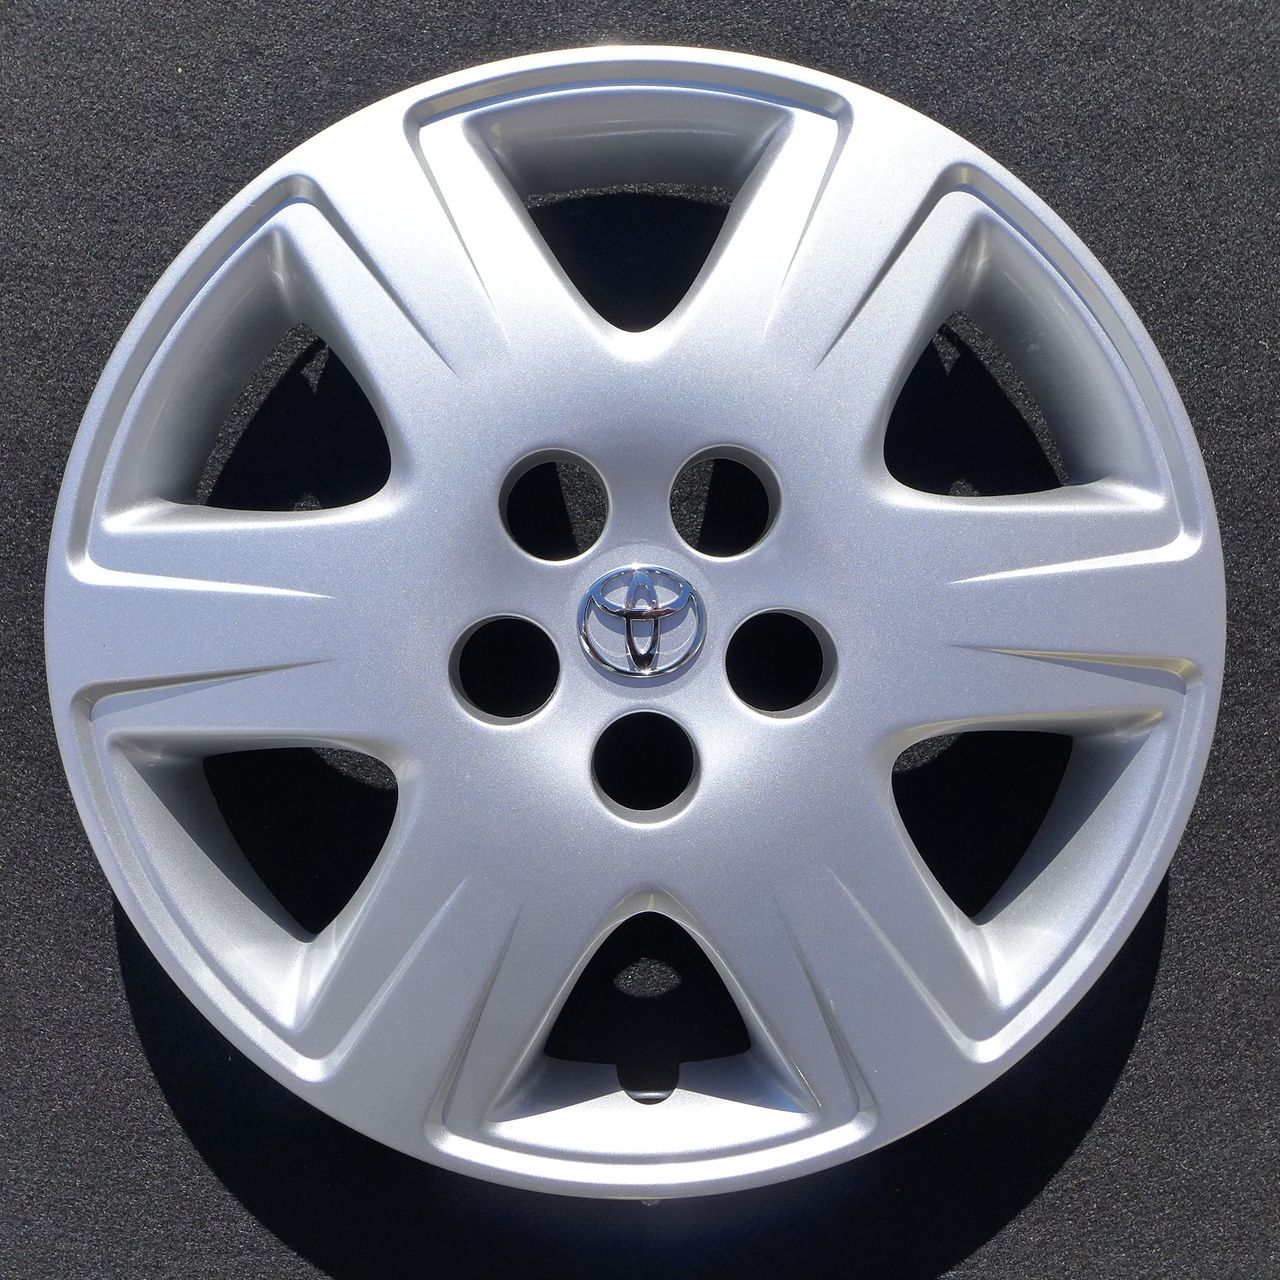 Brand new 2005 2006 2007 2008 toyota style corolla hubcap wheel cover 15 61133